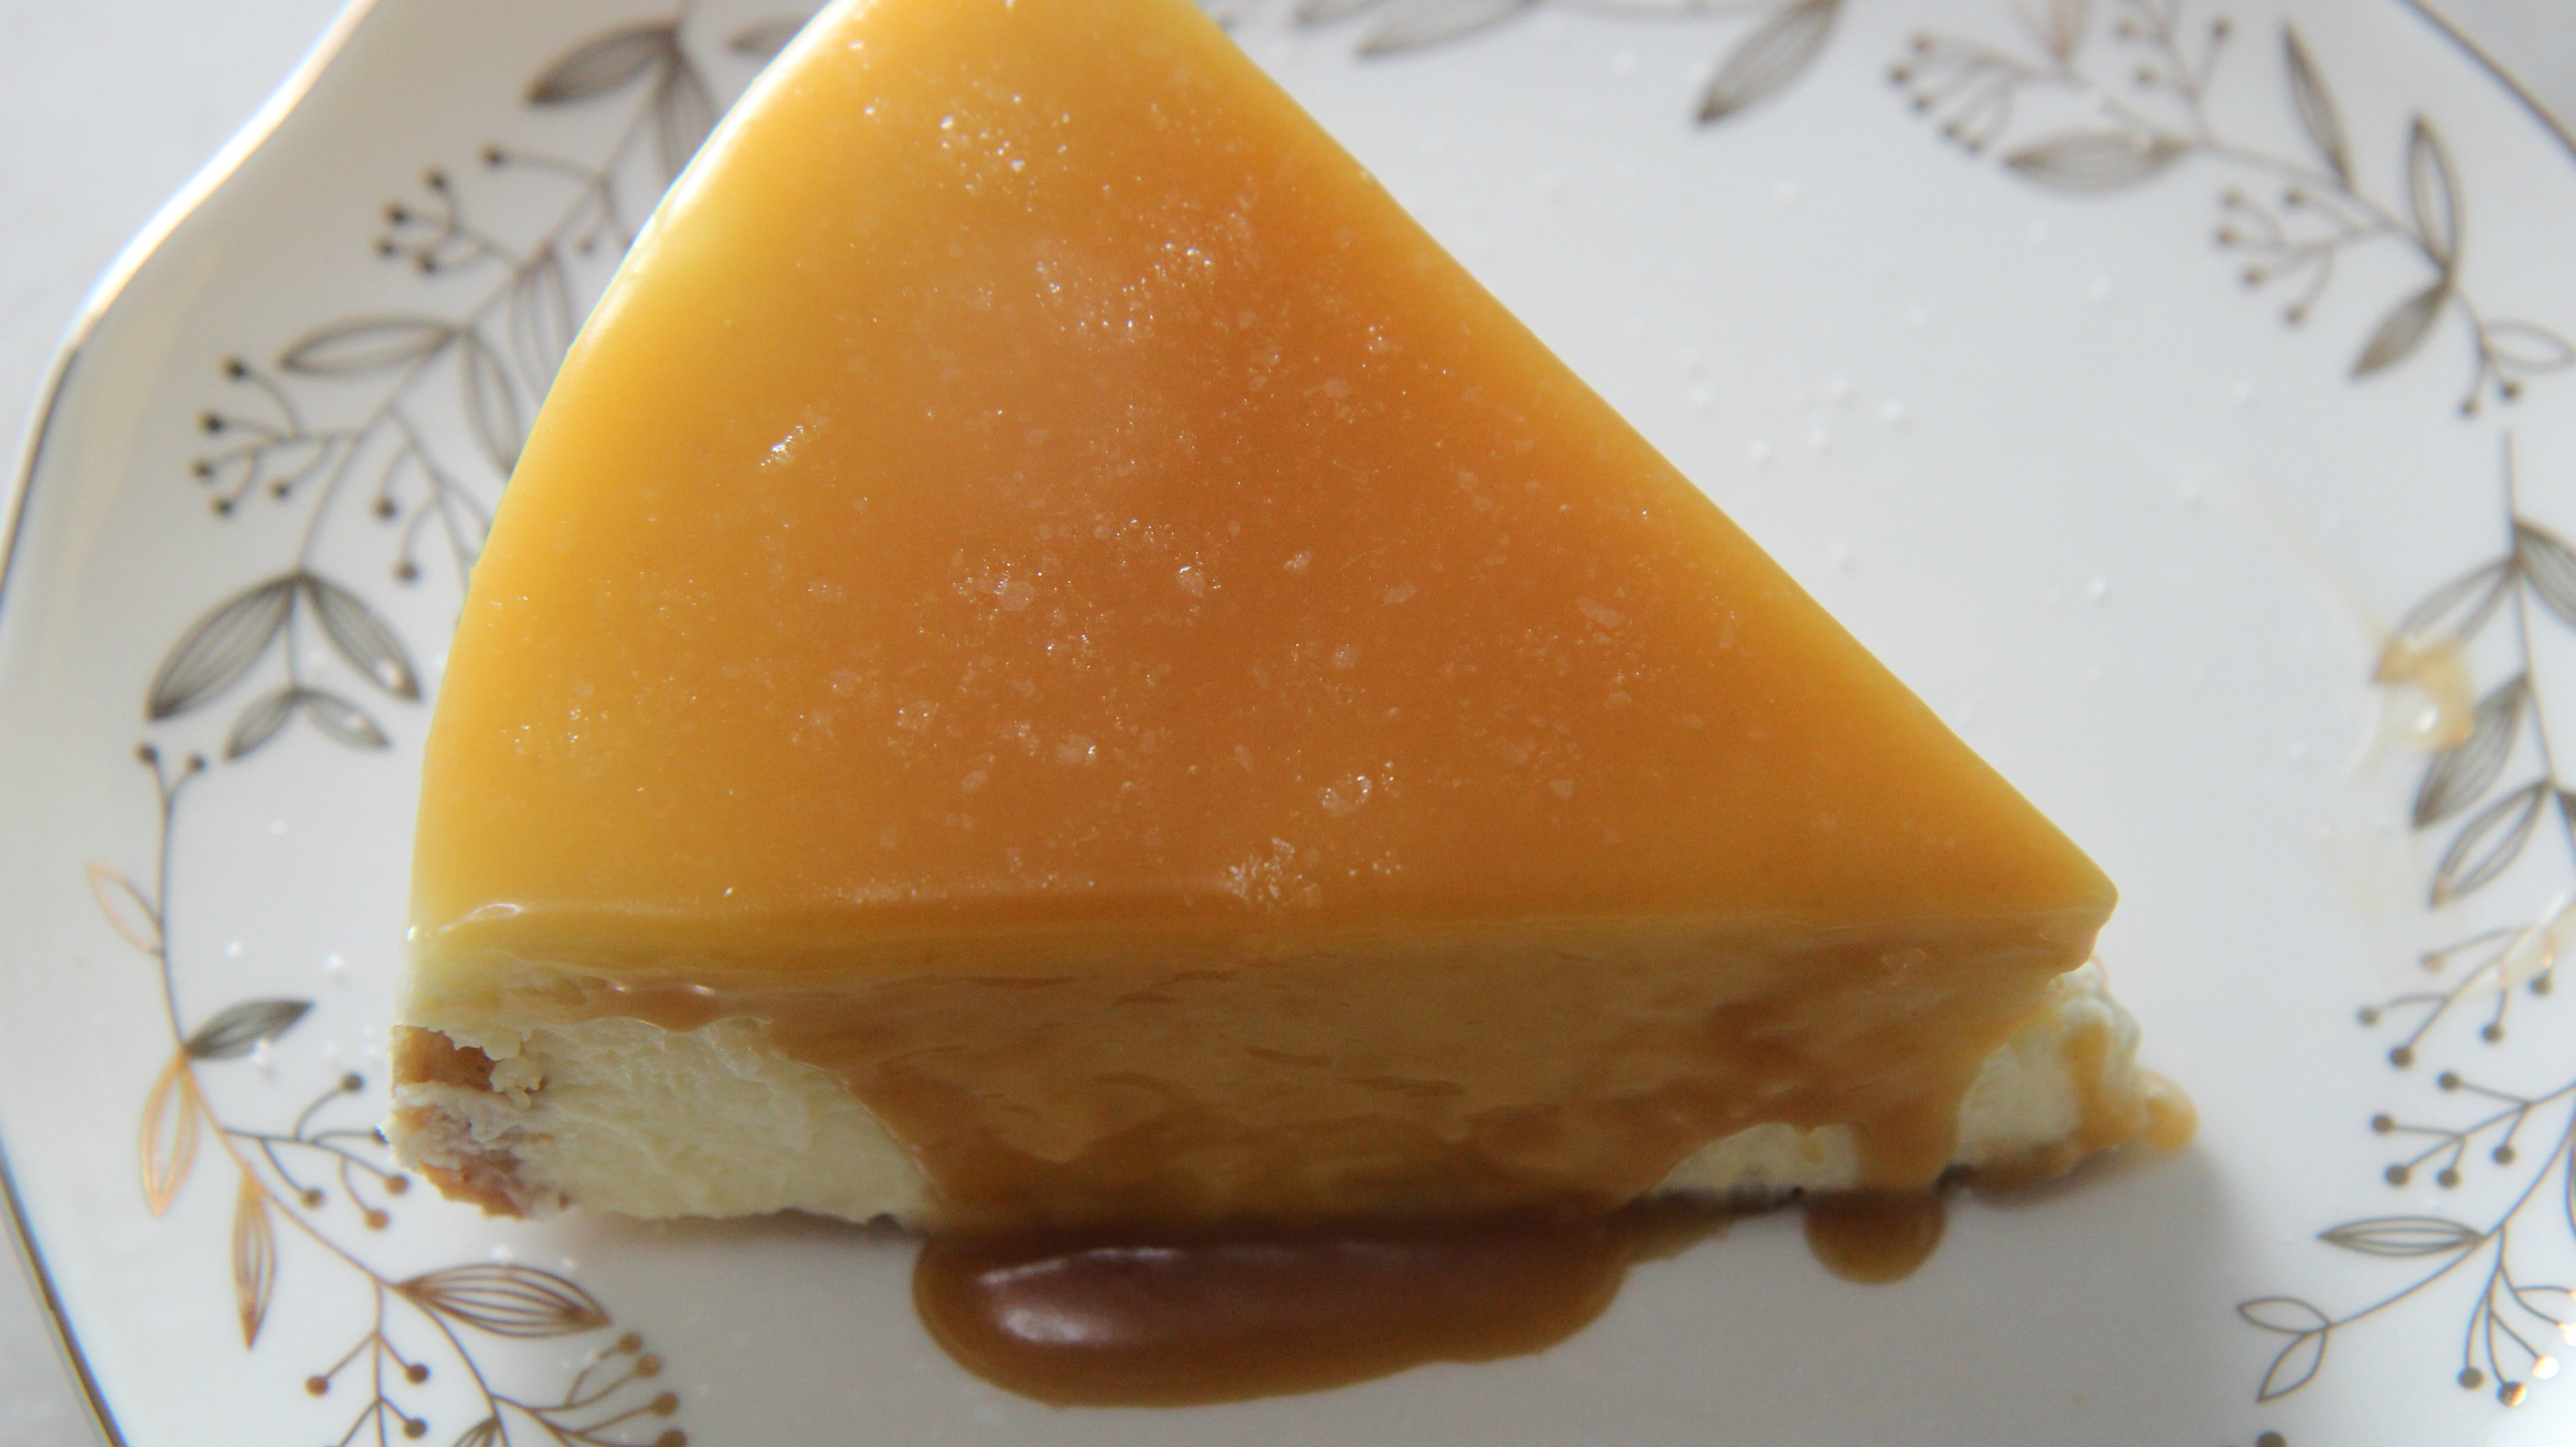 a slice of salted caramel cheesecake on a white plate